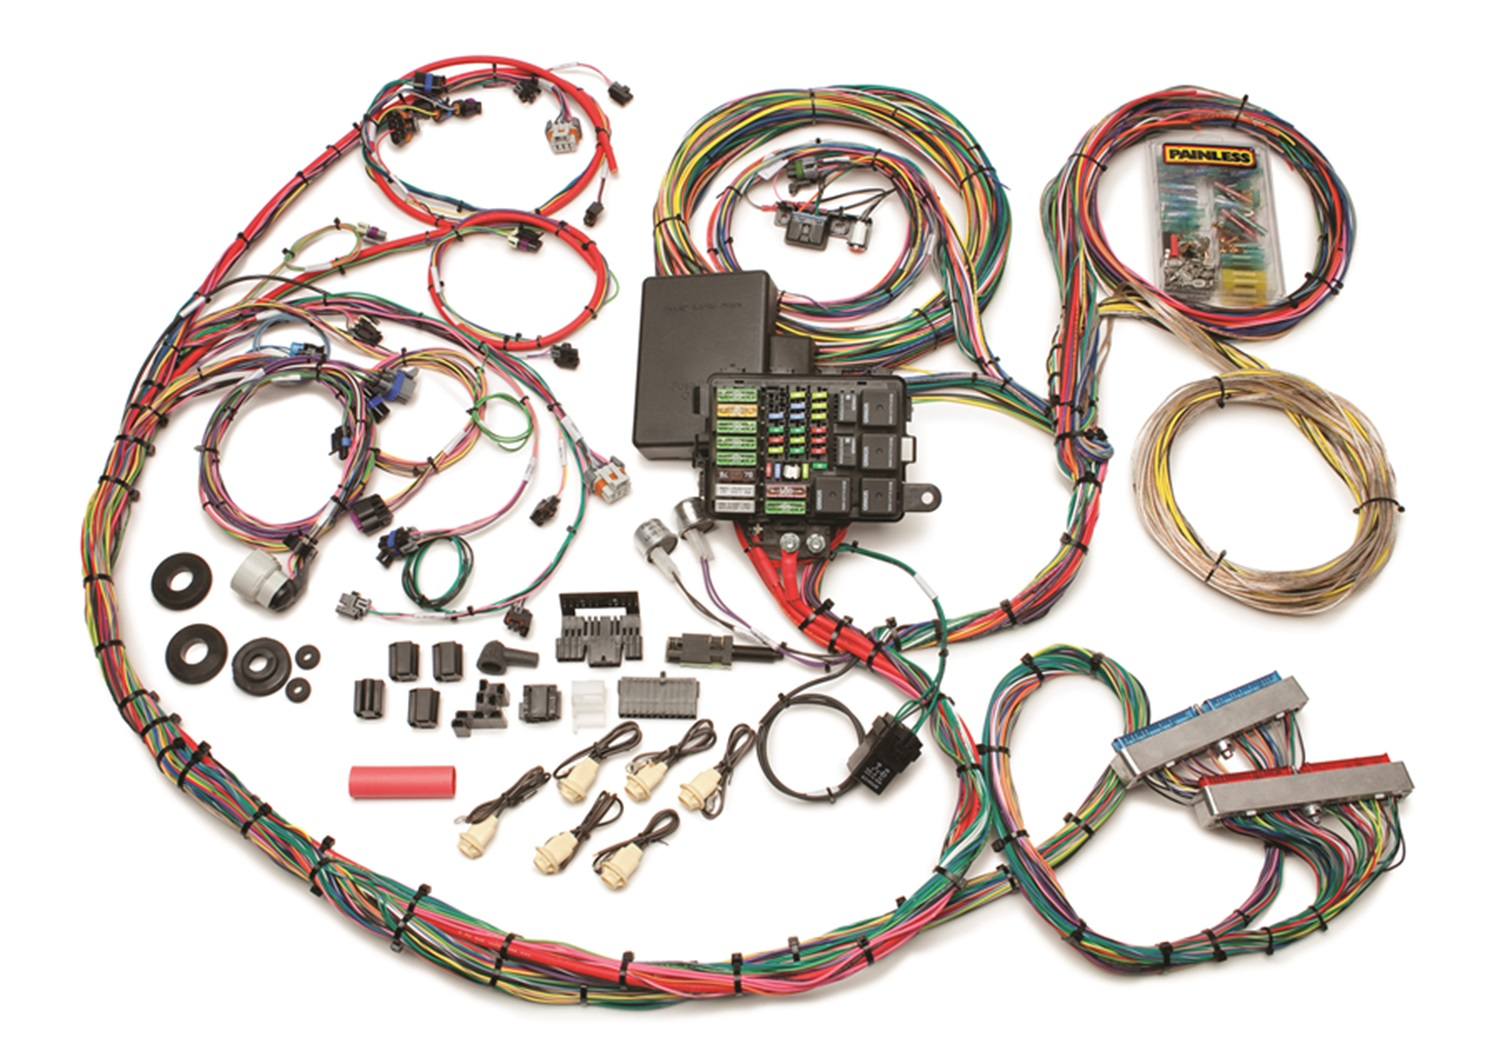 hight resolution of painless 60617 1999 05 gm gen iii 4 8 5 3 6 0l efi chassis harness manual throttle